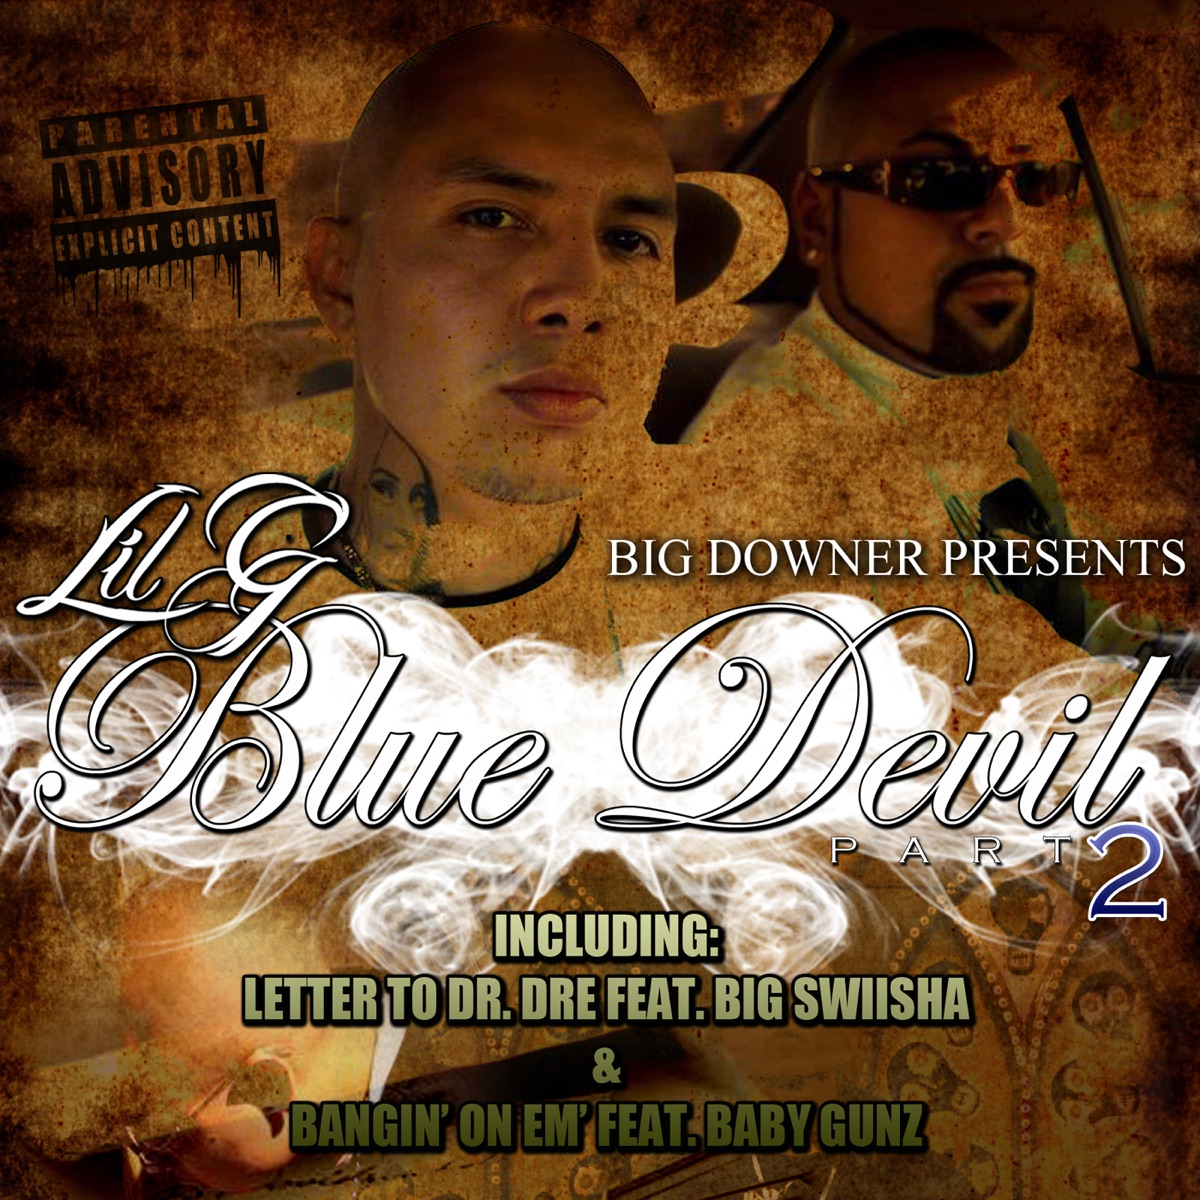 Blue Devil Part 2 Album Cover by King Lil G